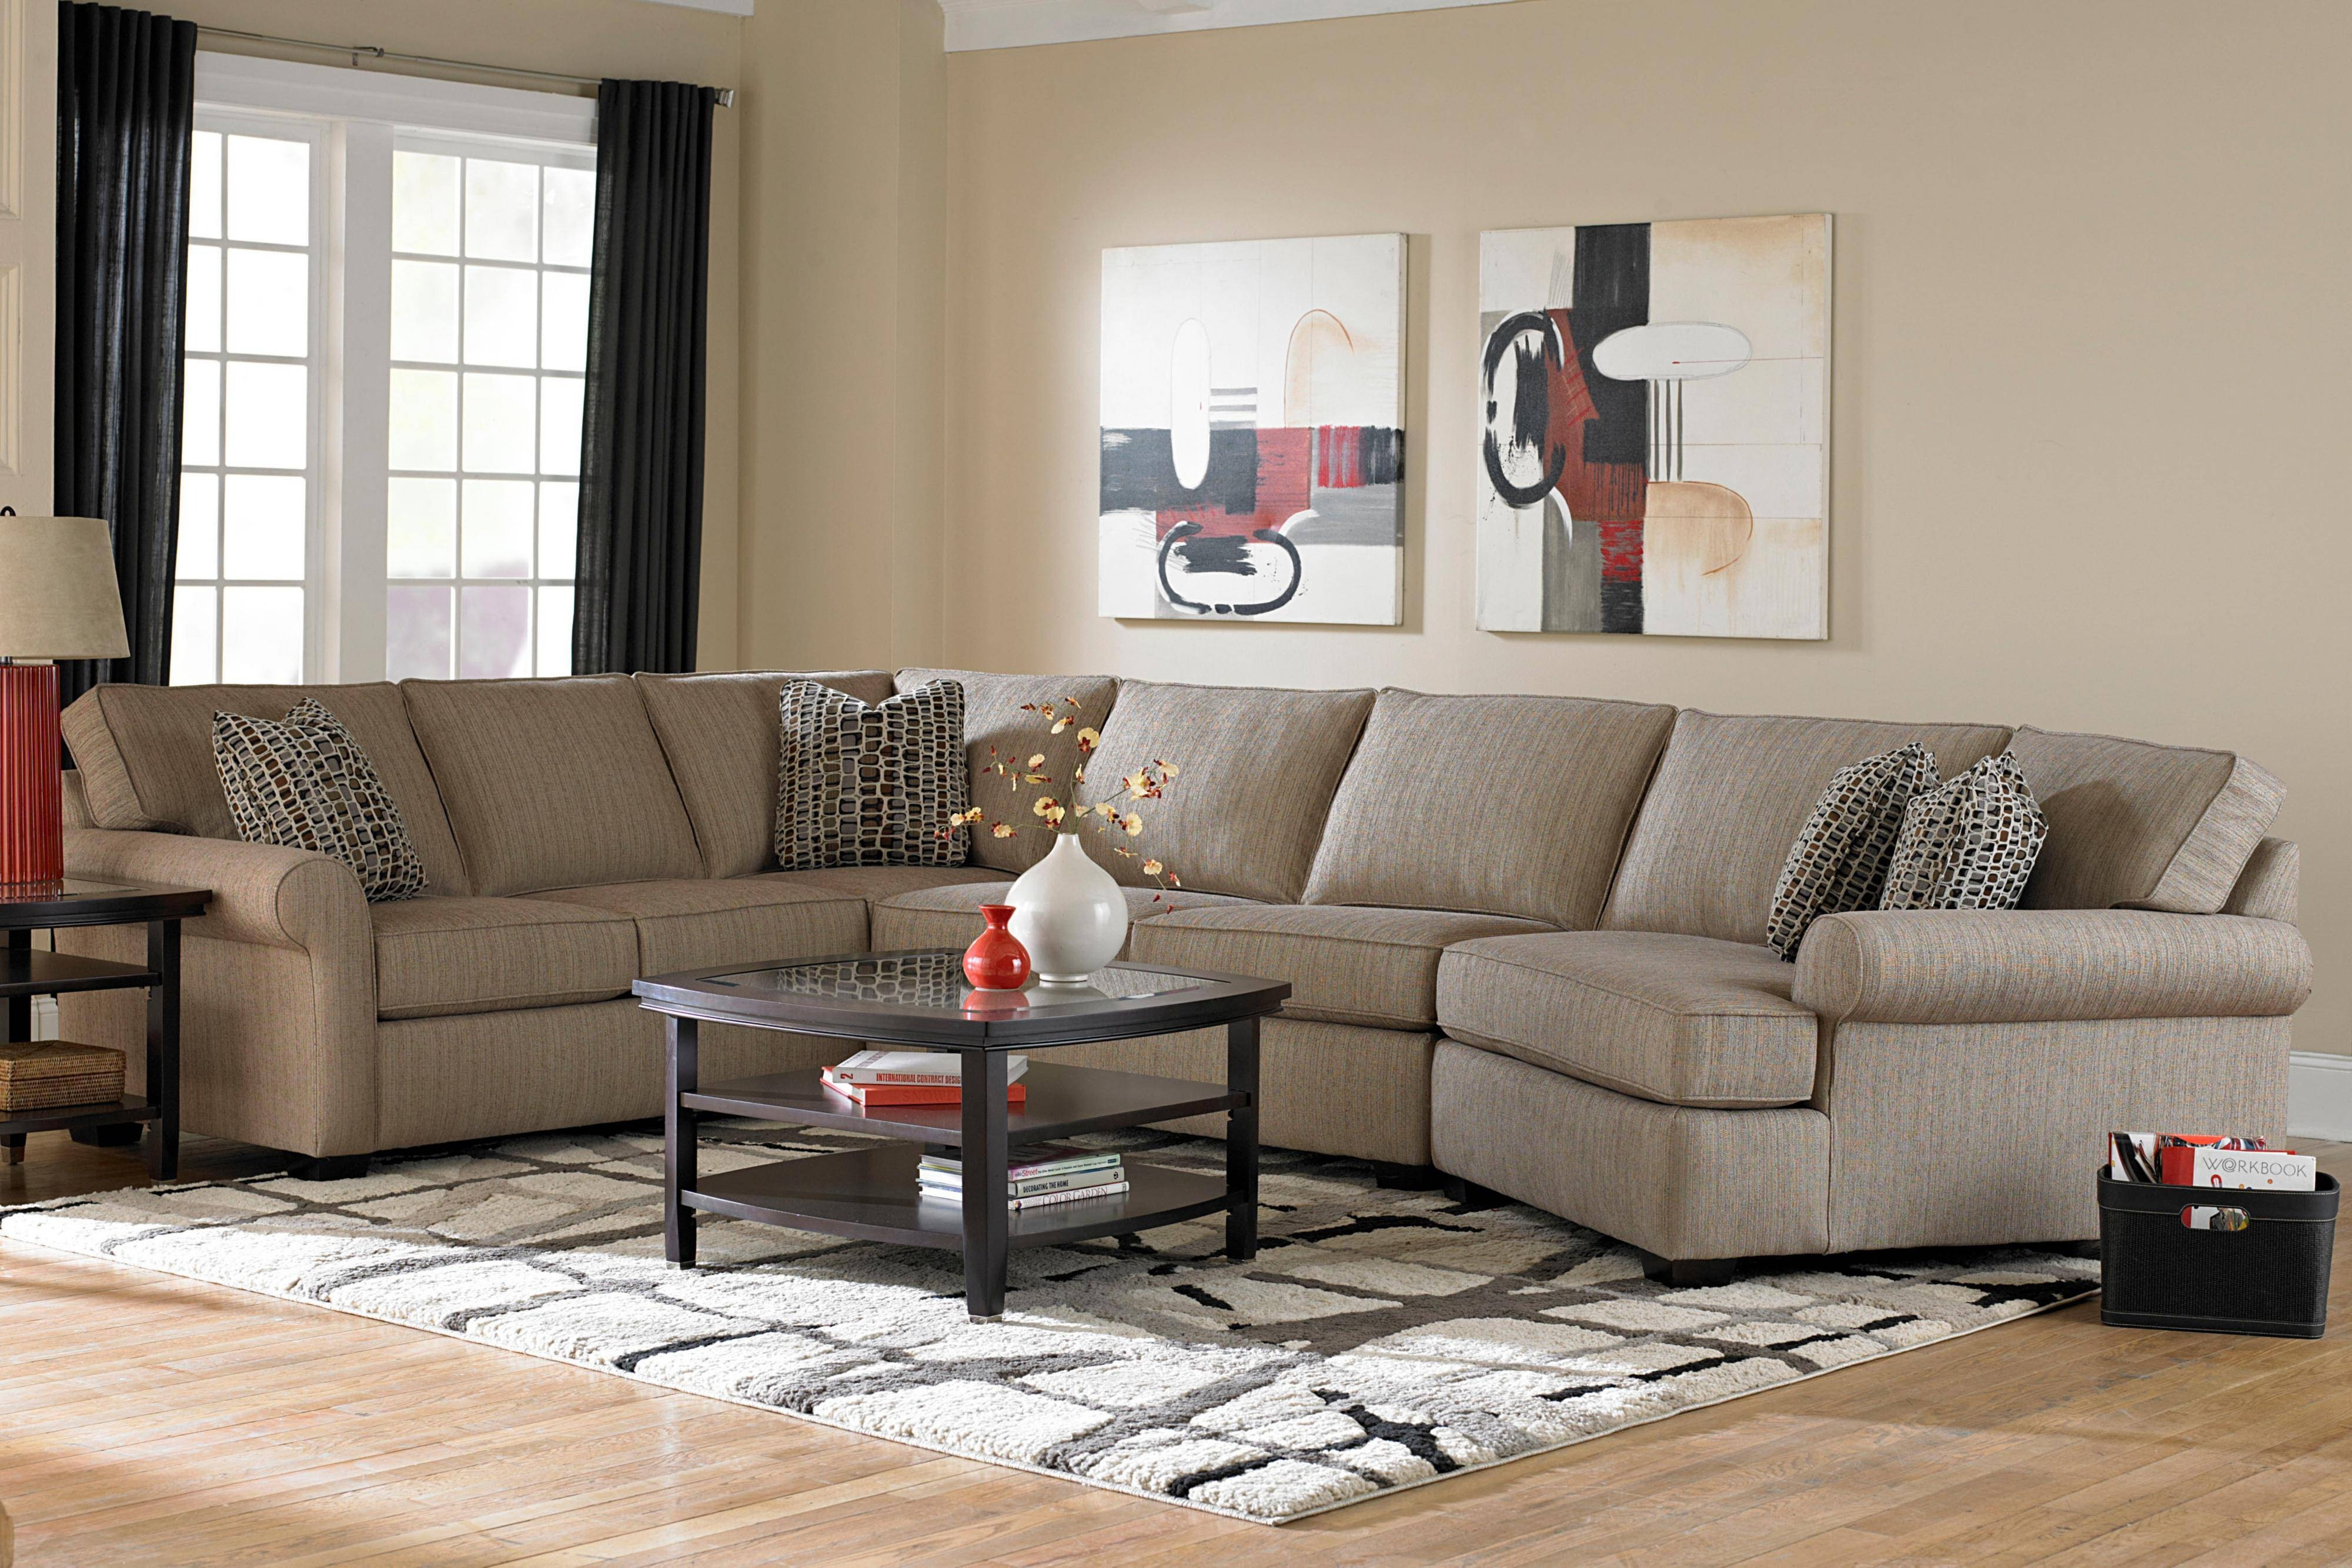 Broyhill Furniture Ethan Transitional Sectional Sofa With Right in Cuddler Sectional Sofa (Image 4 of 30)